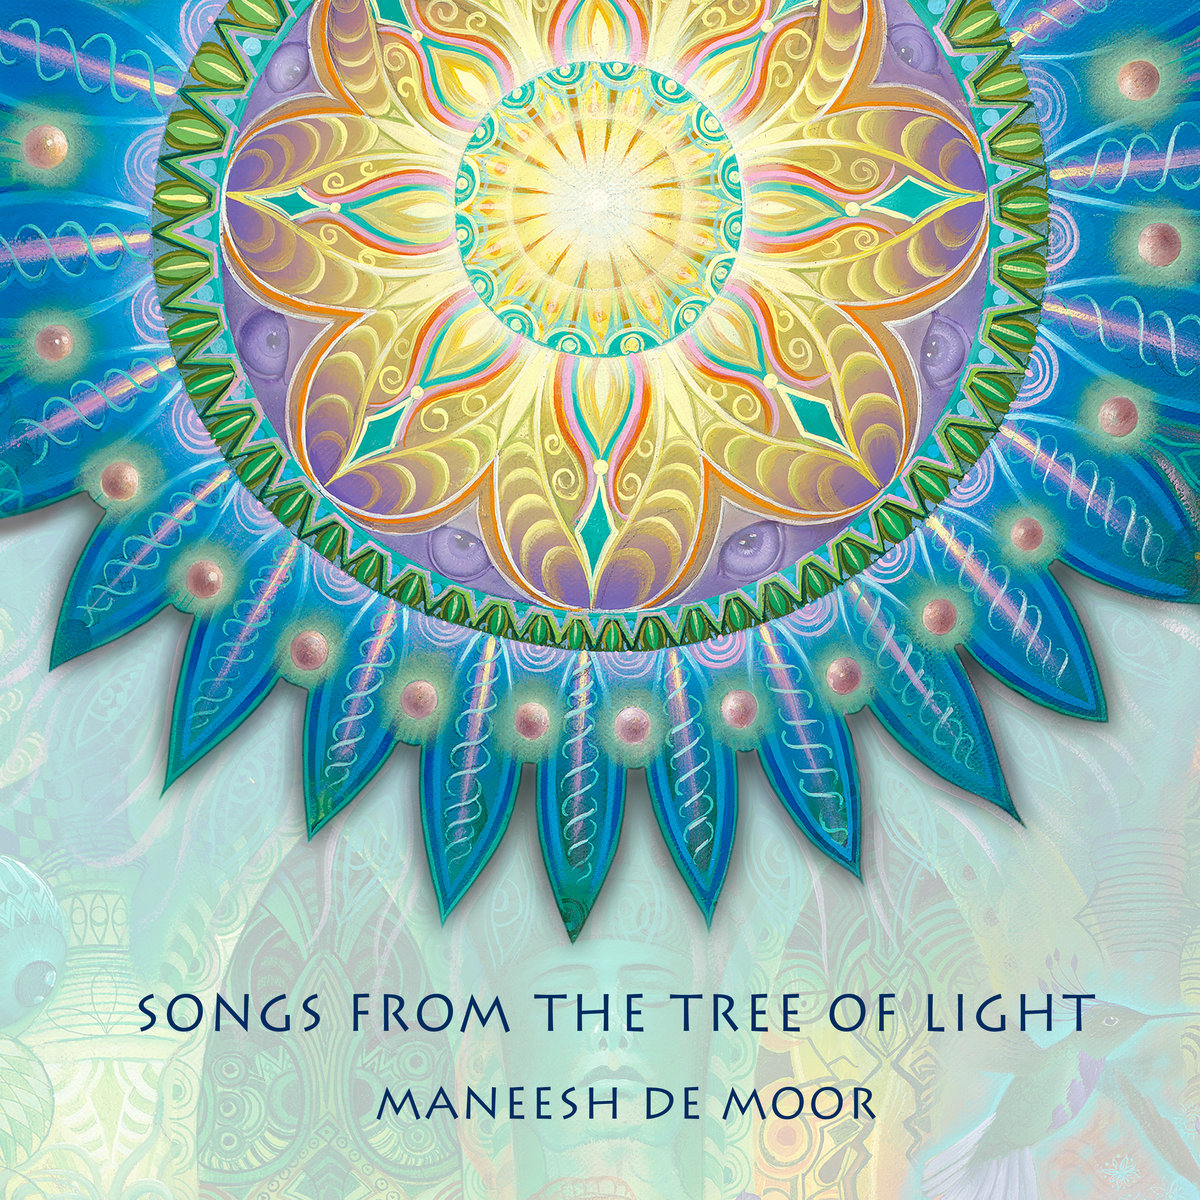 SONGS FROM THE TREE OF LIGHT. By Maneesh De Moor